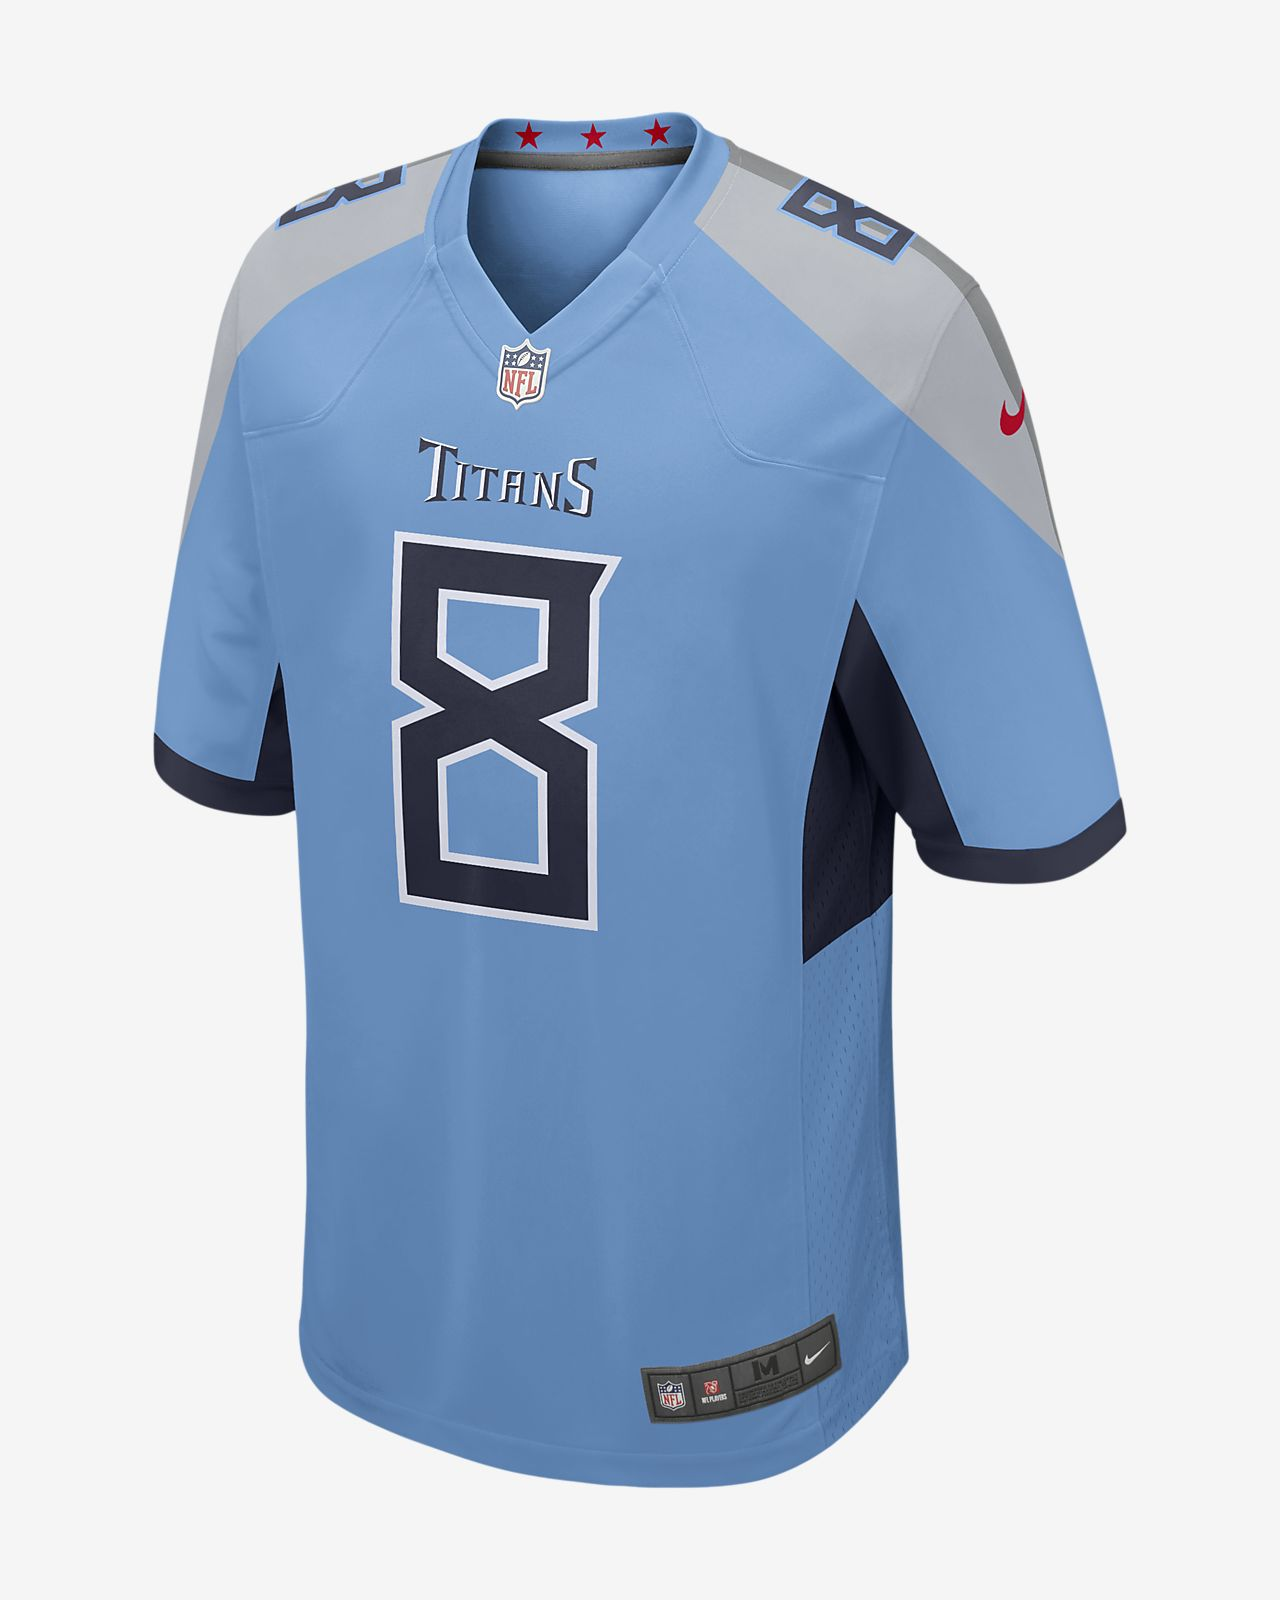 77111325751 NFL Tennessee Titans (Marcus Mariota) Men's Game Football Jersey ...